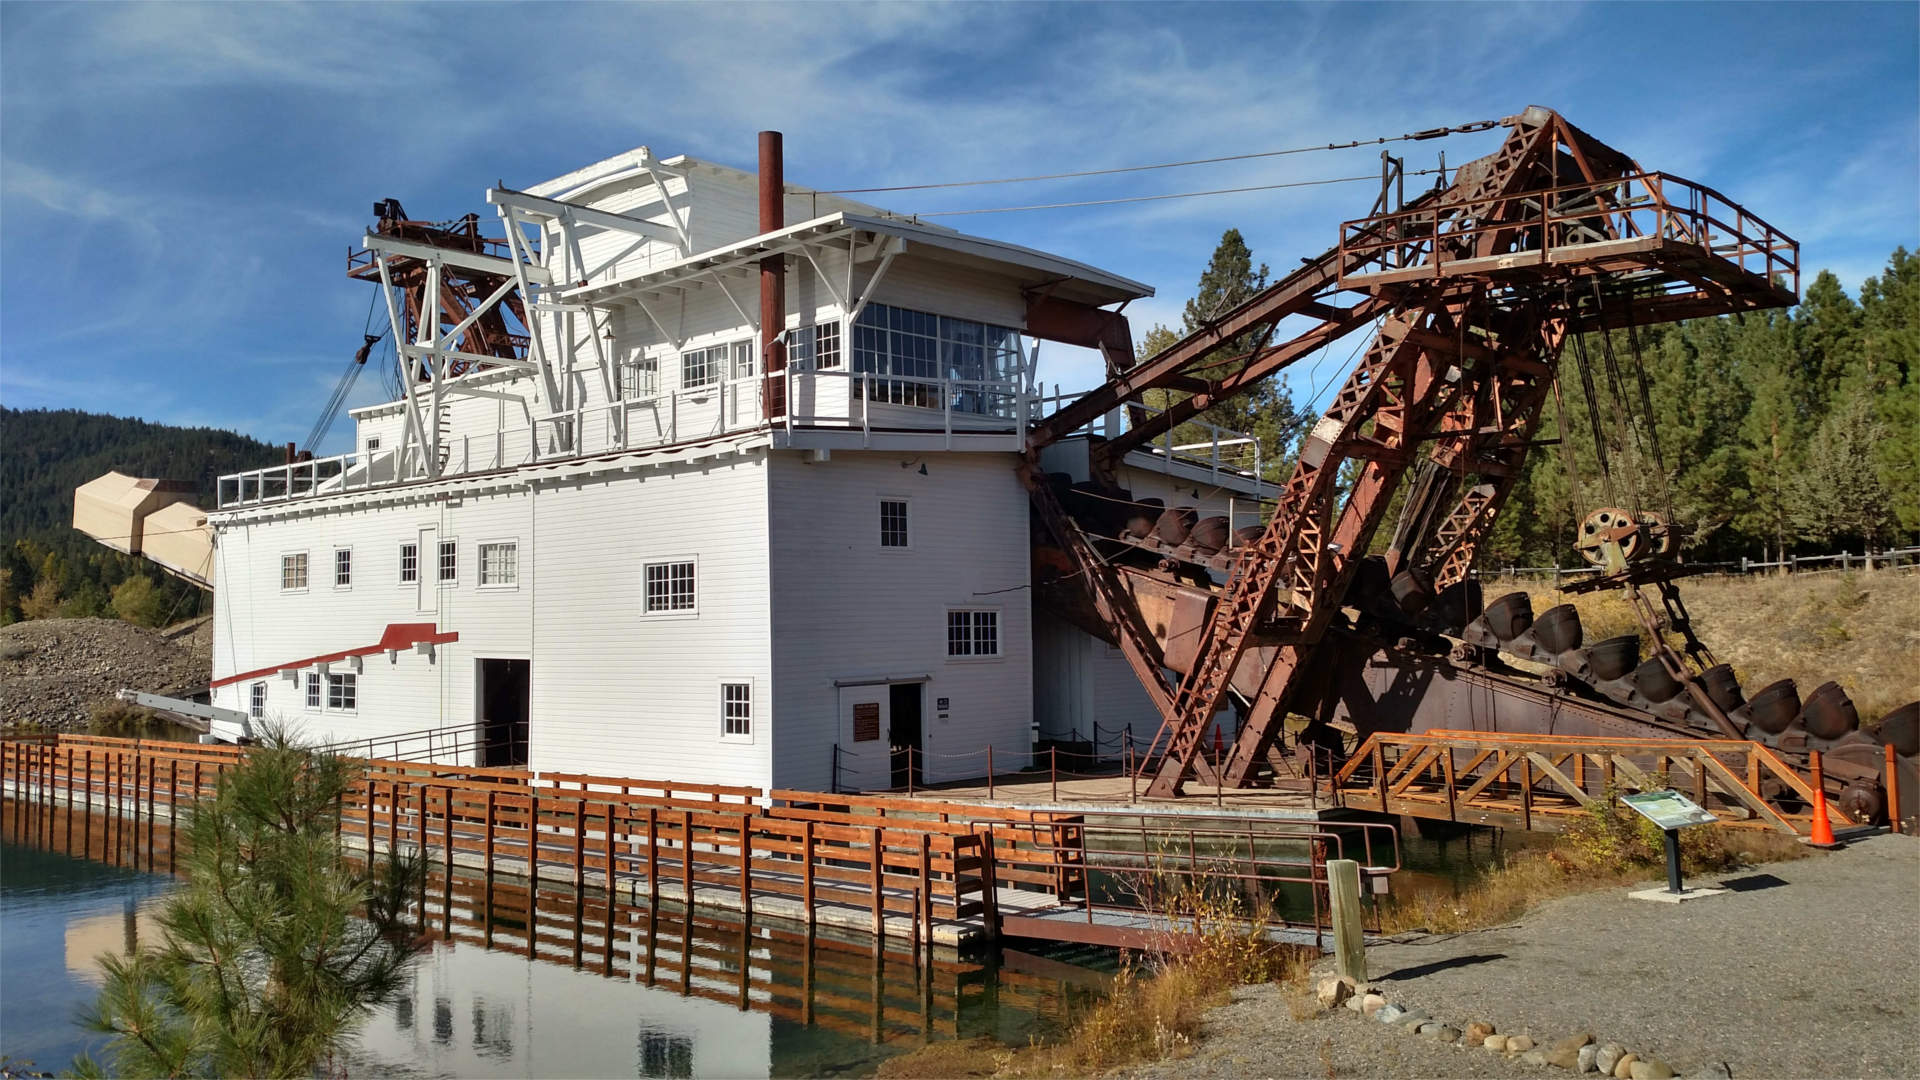 Visit Sumpter Oregon: Sumpter Valley Dredge, Mining History, & Mountains